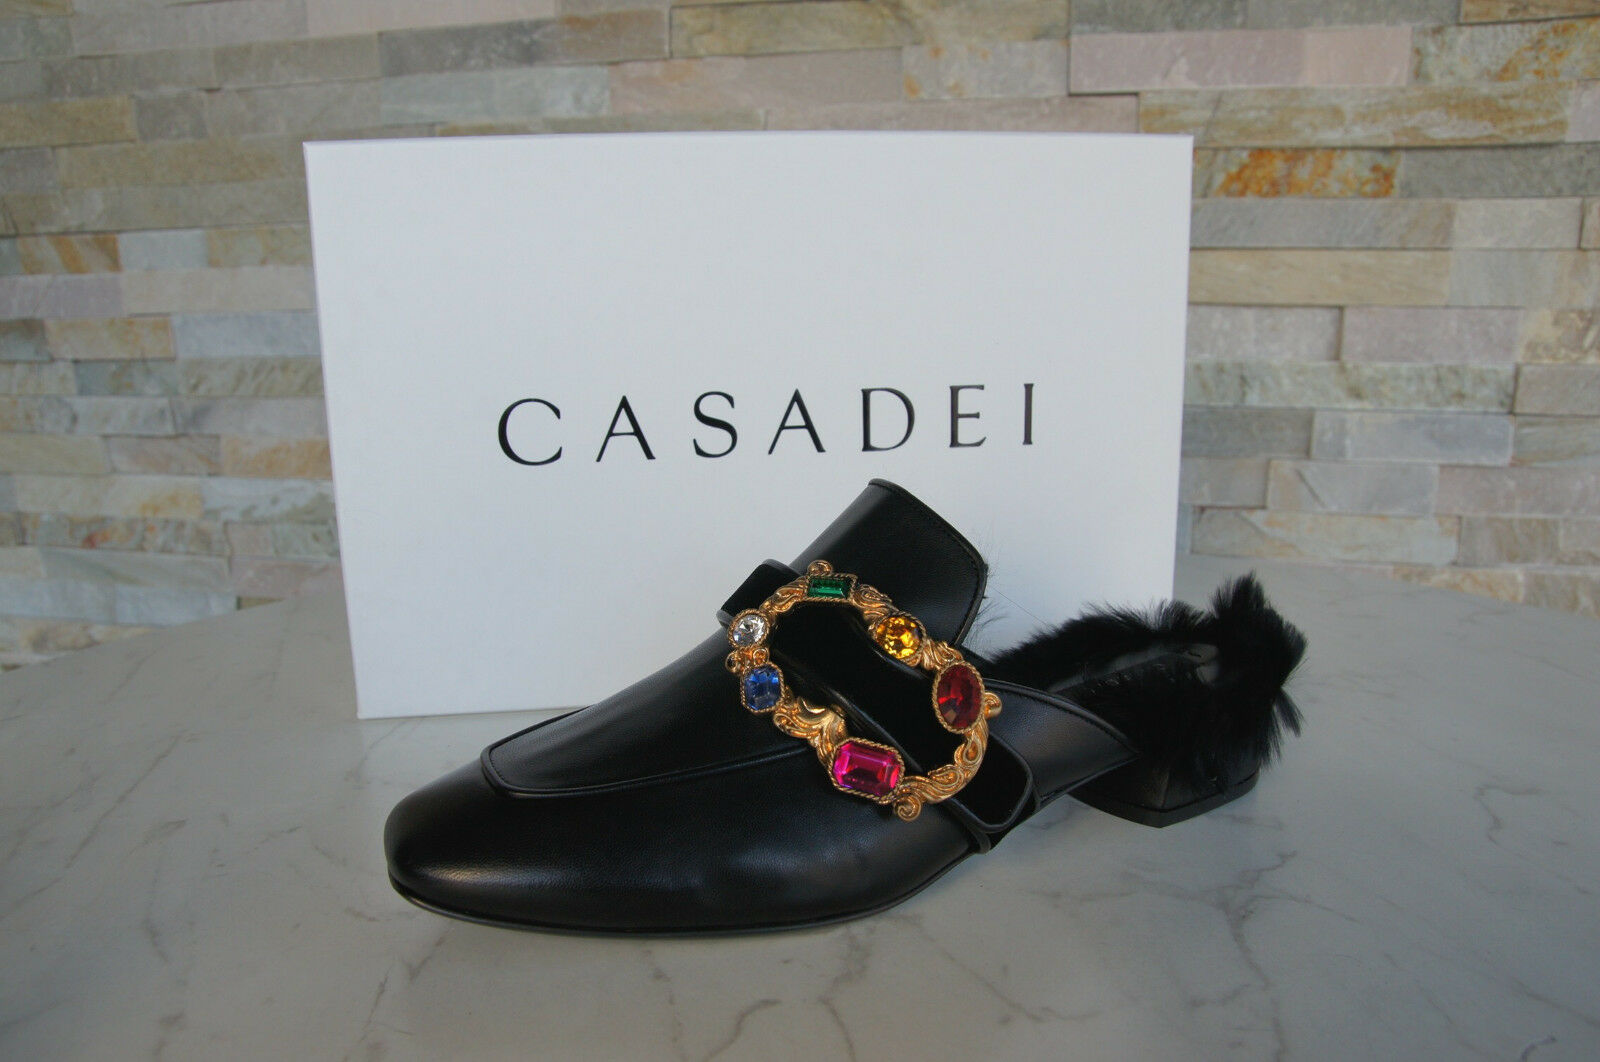 CASADEI GR 38 fur of sabots mules slippers zapatos negro new formerly EIA